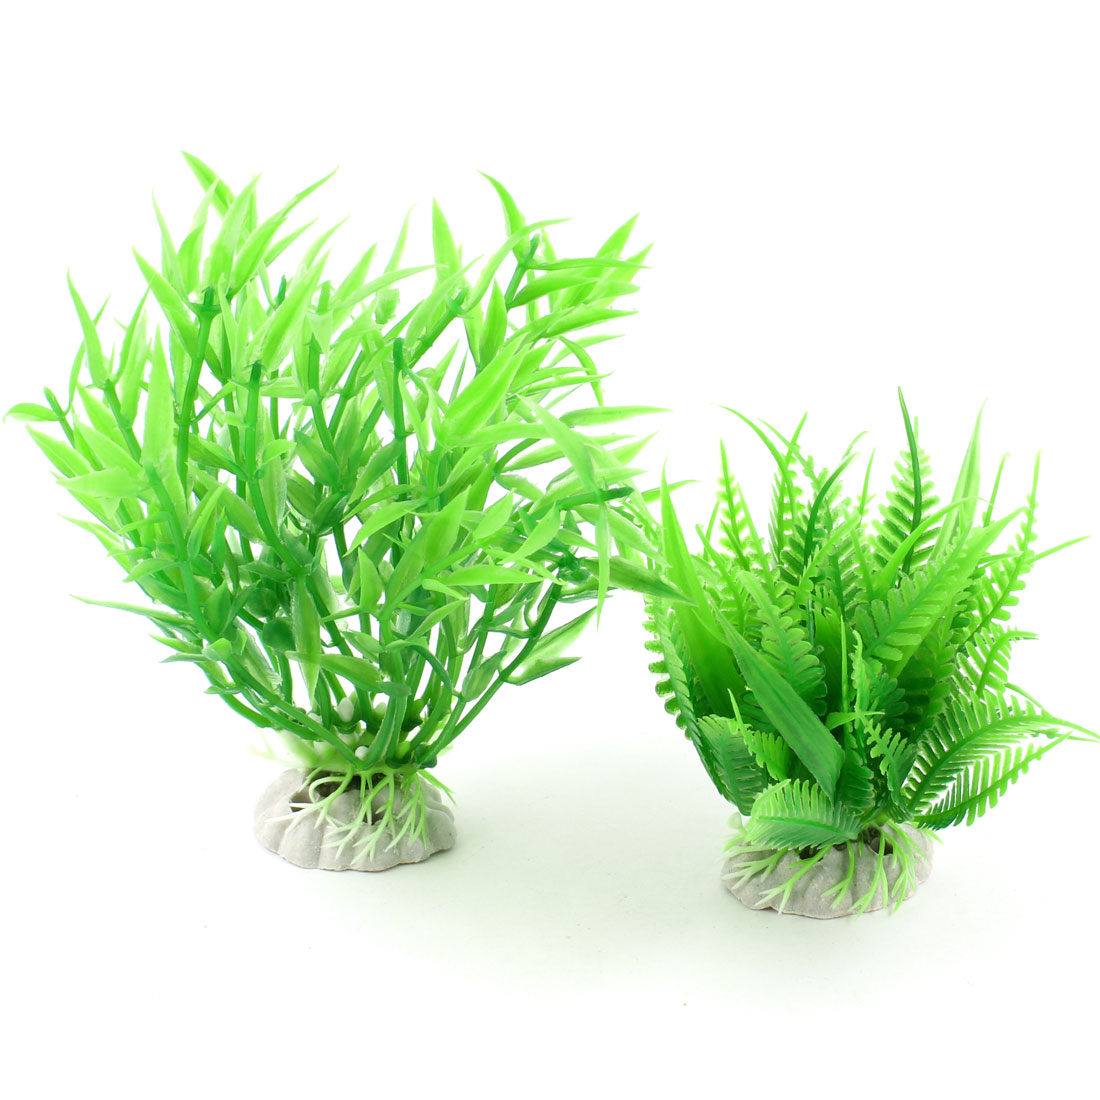 2 Pcs Green Artificial Fish Tank Underwater Grass w Ceramic Base